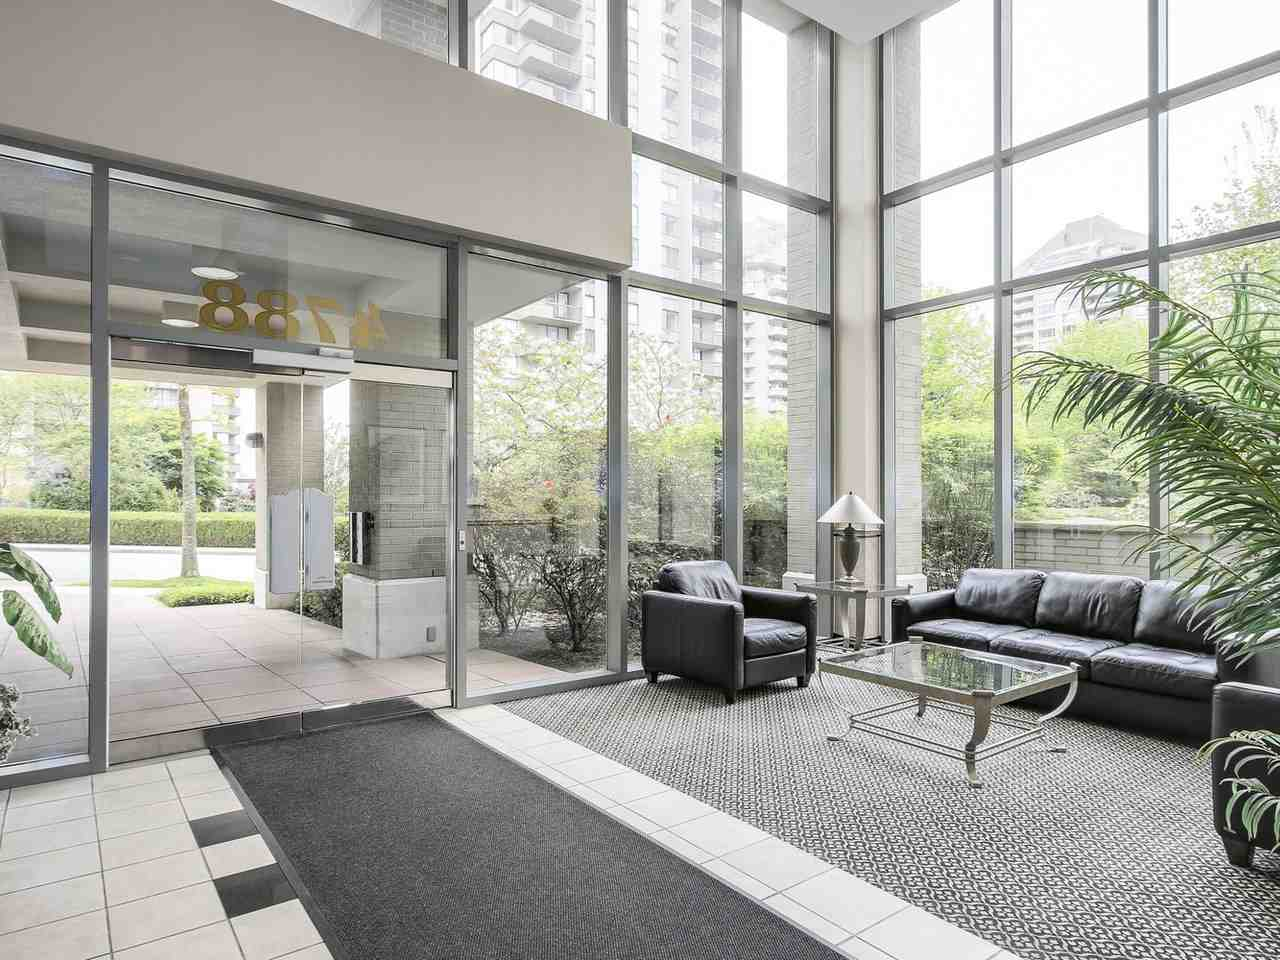 Condo Apartment at 1701 4788 HAZEL STREET, Unit 1701, Burnaby South, British Columbia. Image 2